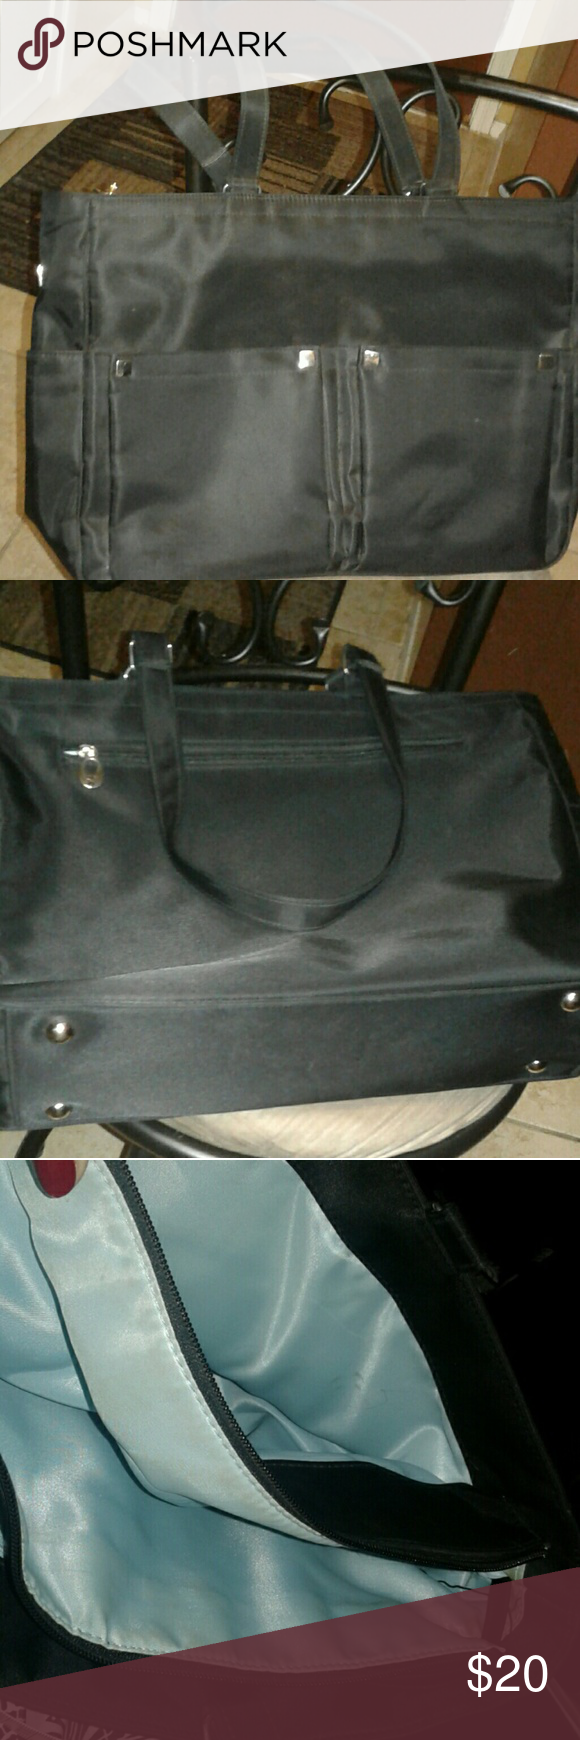 "Black Tote Black nylon bag with center zippered section. Front and side pockets. Back zipper. Footed. Appx 13x16x4.5 with 12"" drop. EUC.  Small stain. Can also be used as lap top bag but not well cushioned. Case Logic Bags Totes"